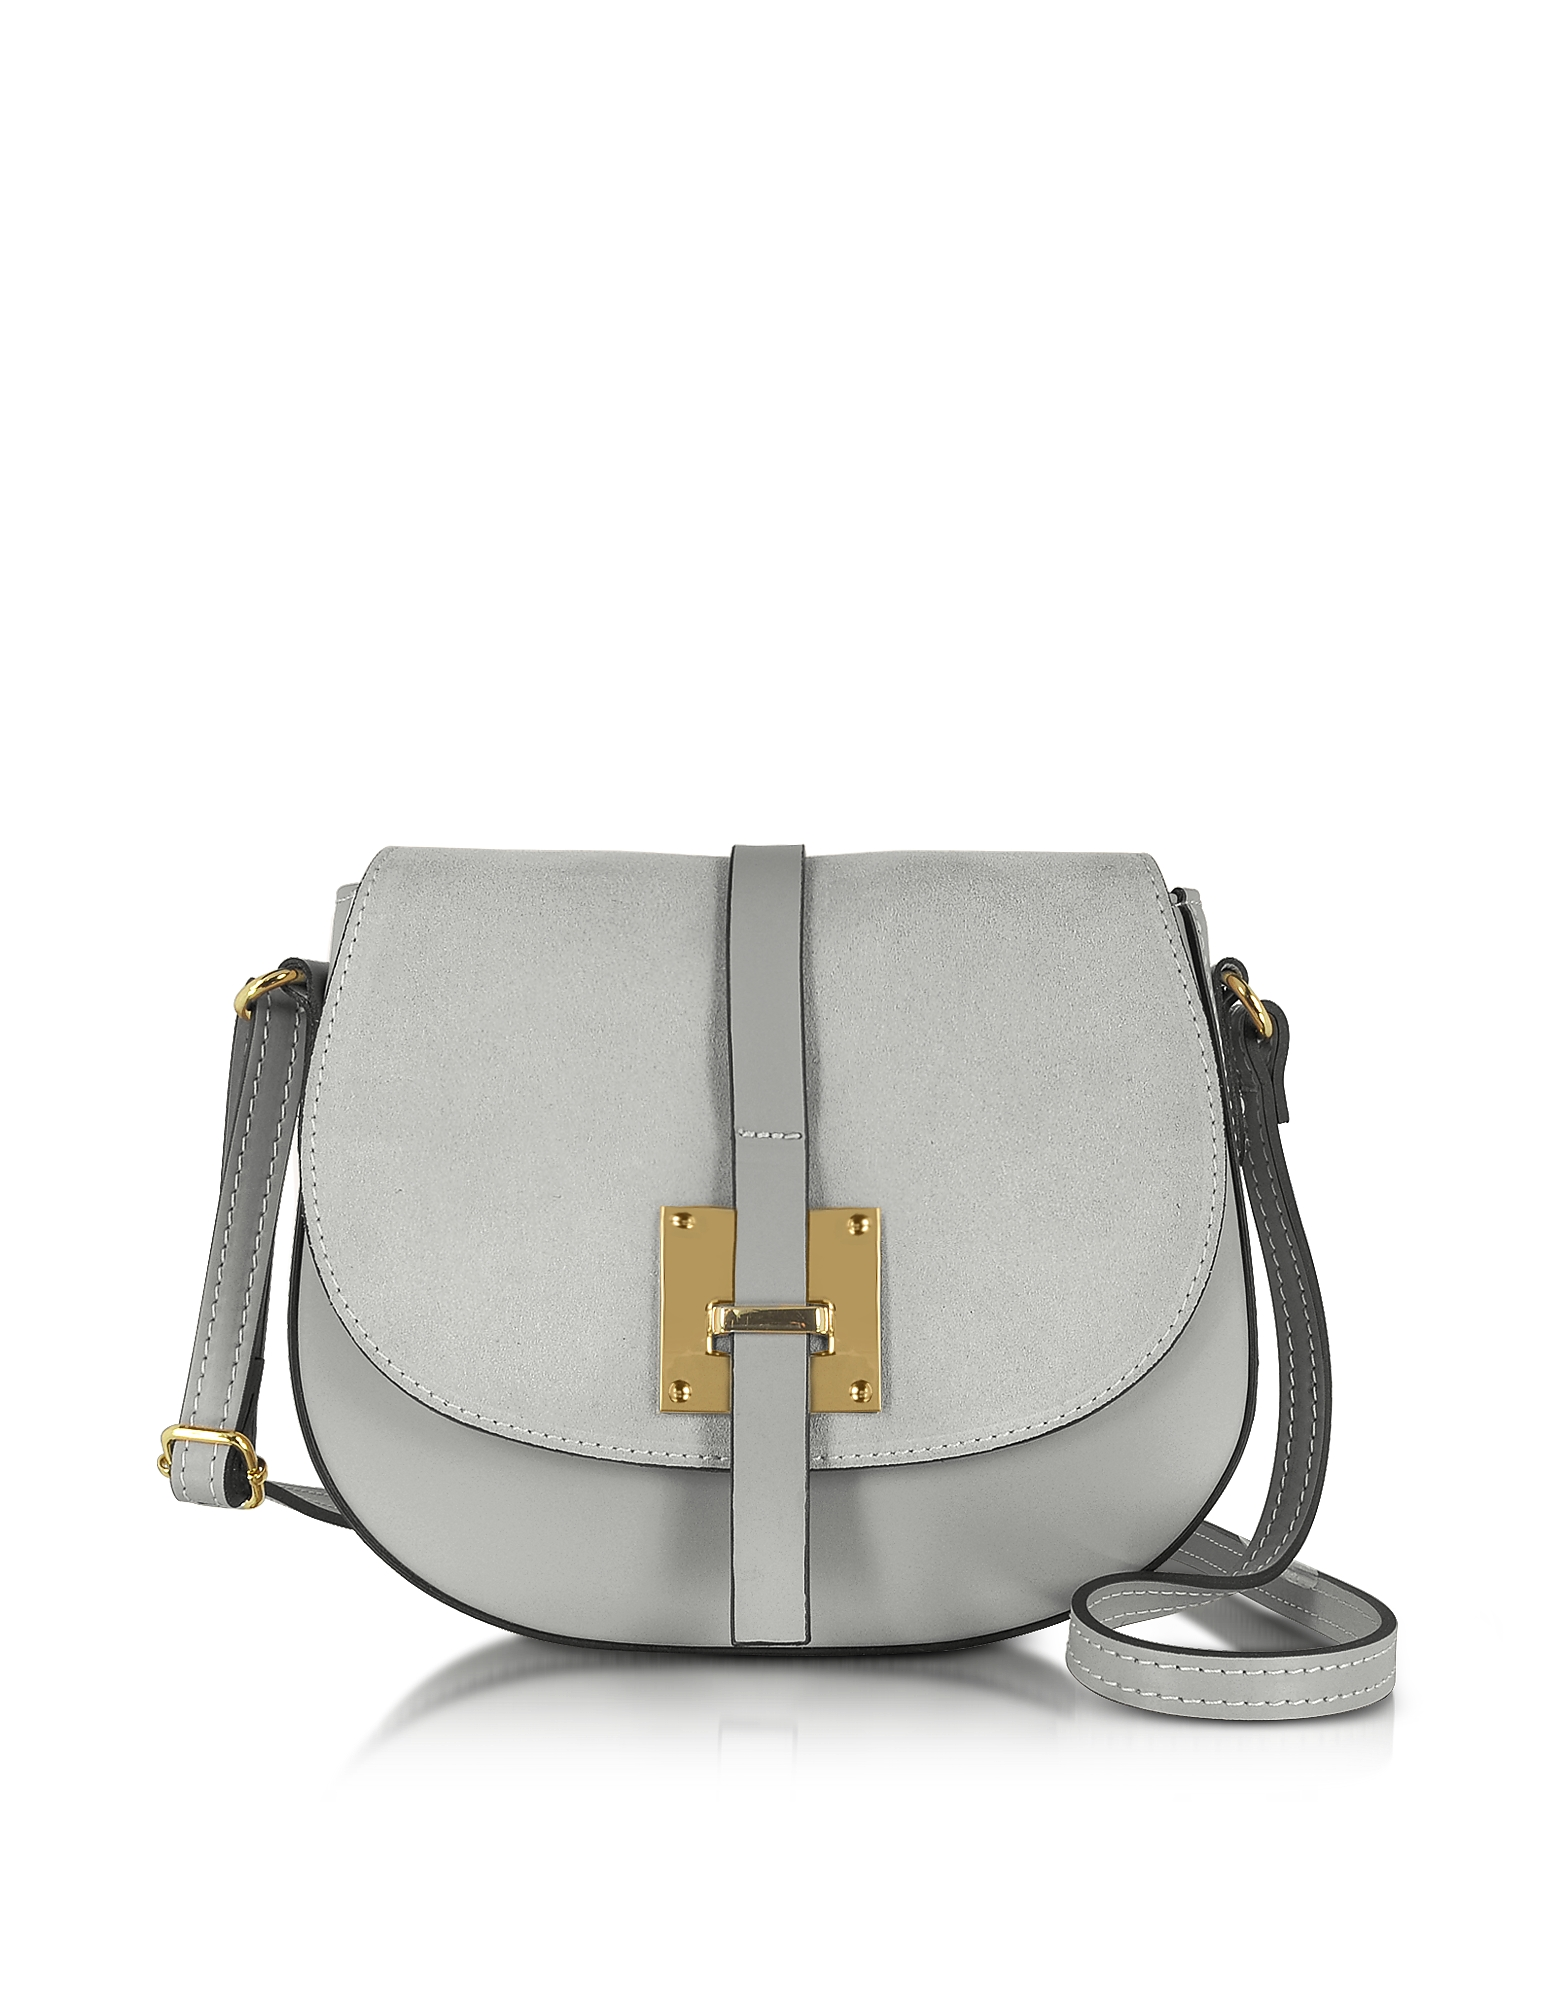 Le Parmentier Handbags, Pollia Pearl Gray Leather and Suede Crossbody Bag